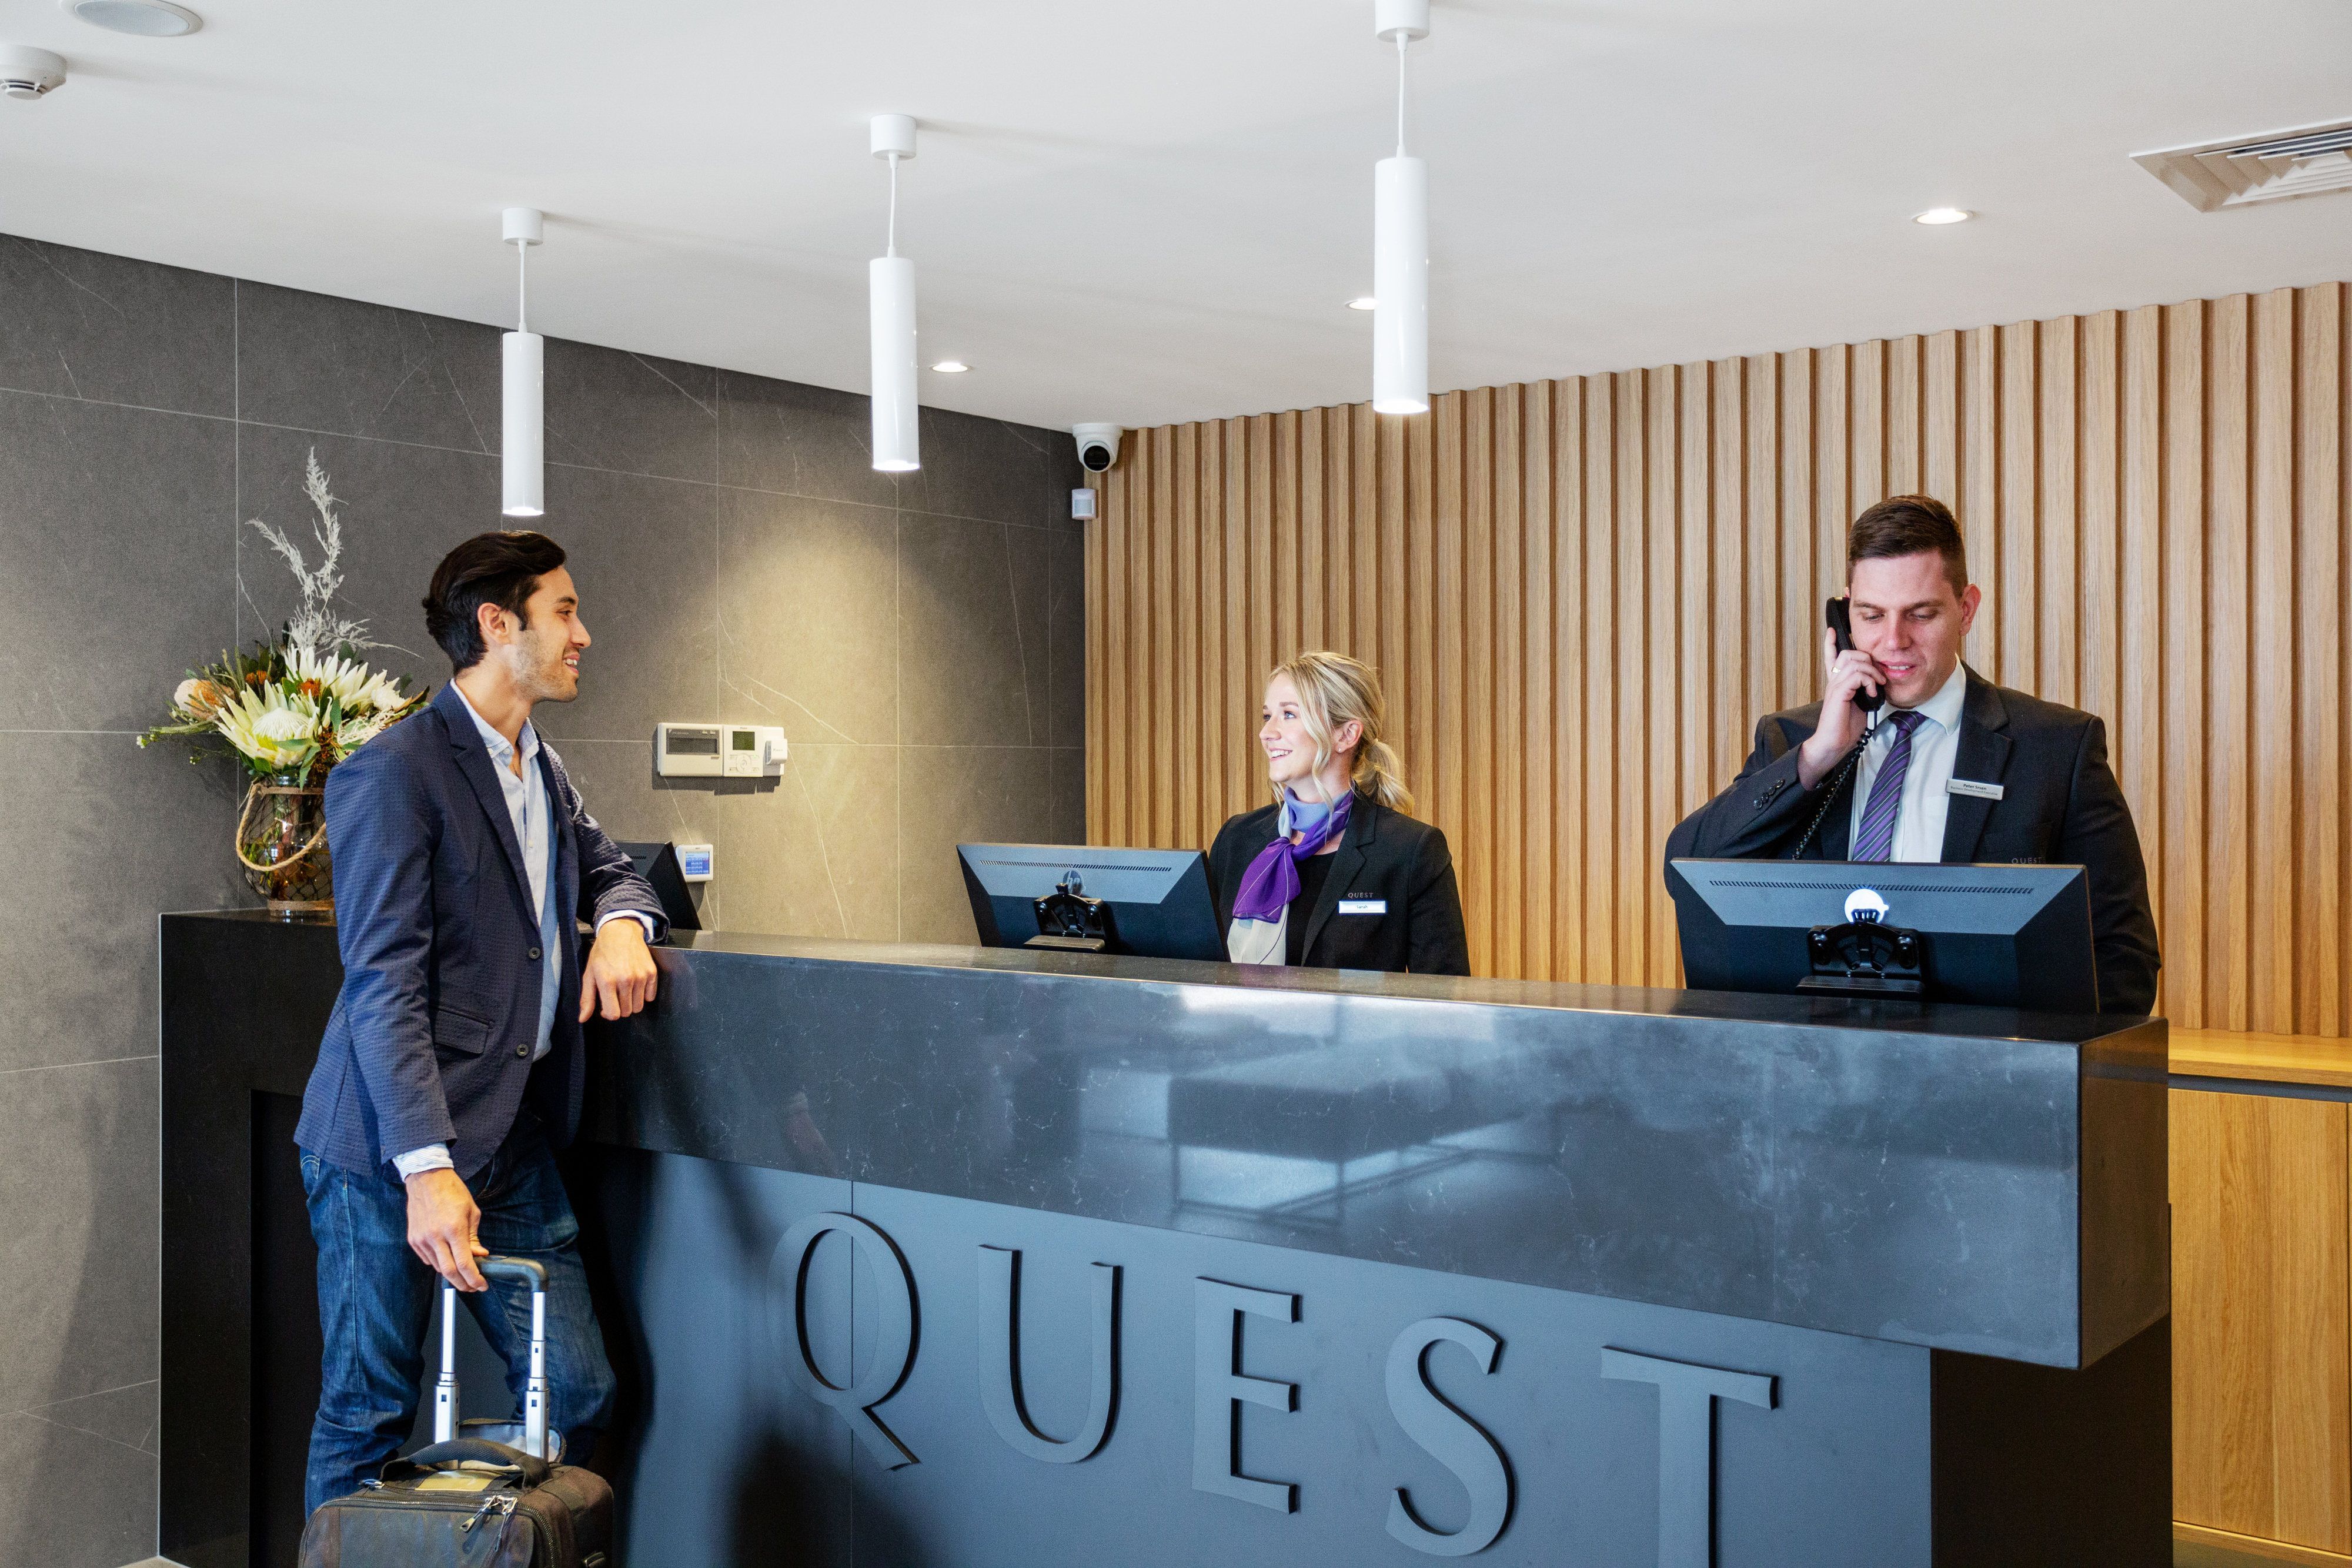 Quest widens franchise recruitment | Inside Franchise Business Executive